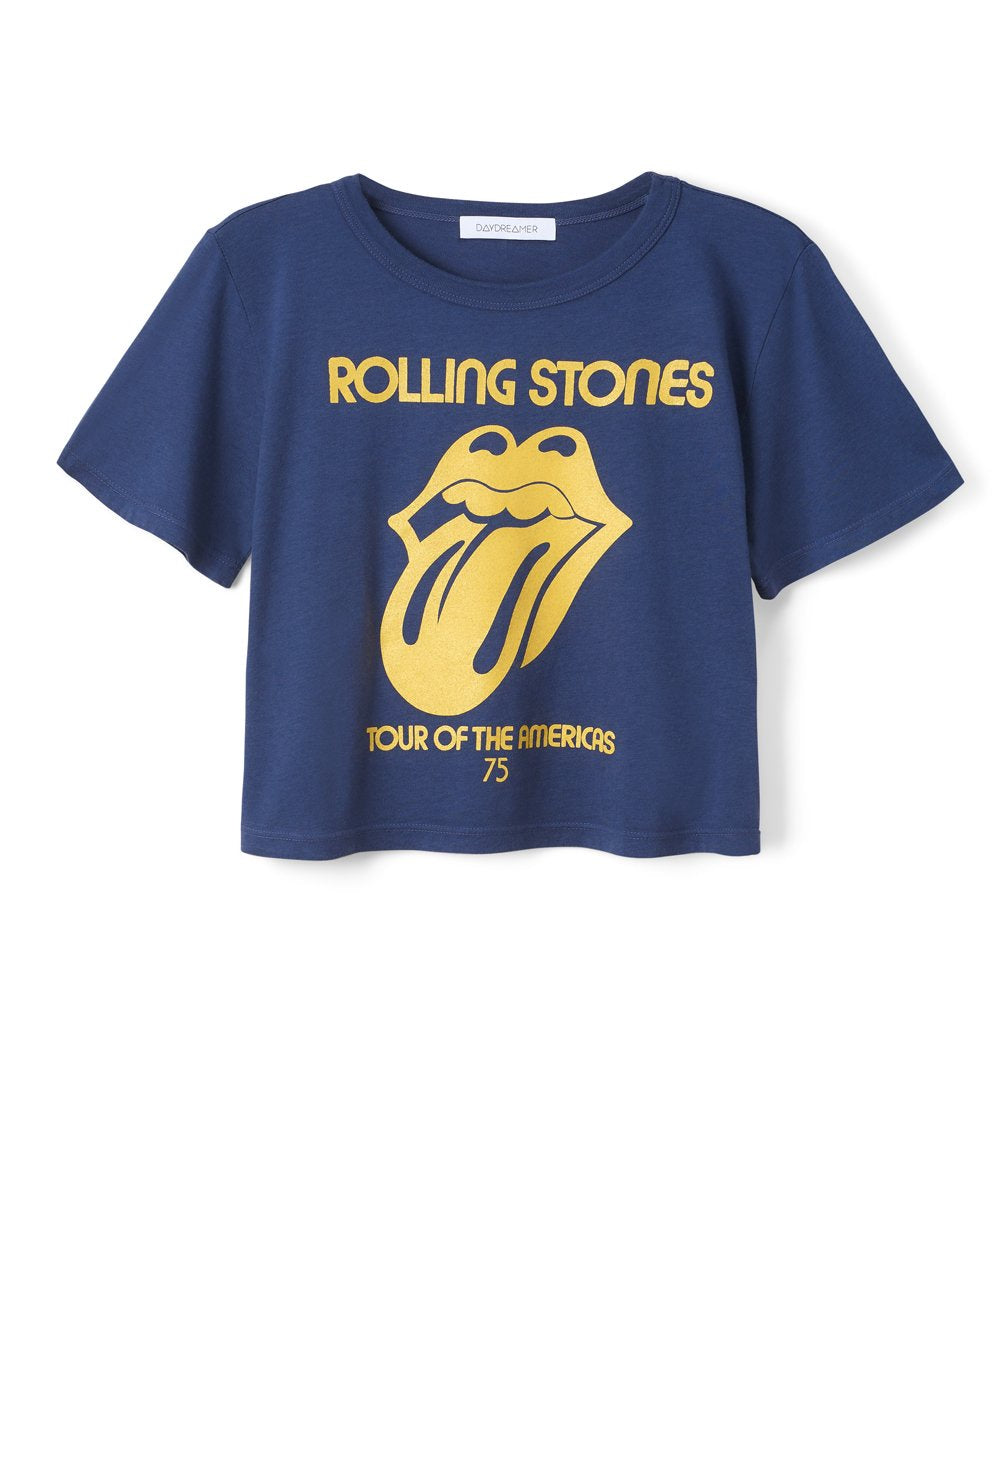 abdbdeac9b5 Daydreamer Rolling Stones Tour of the Americas '75 Rebel Crop - Navy ...